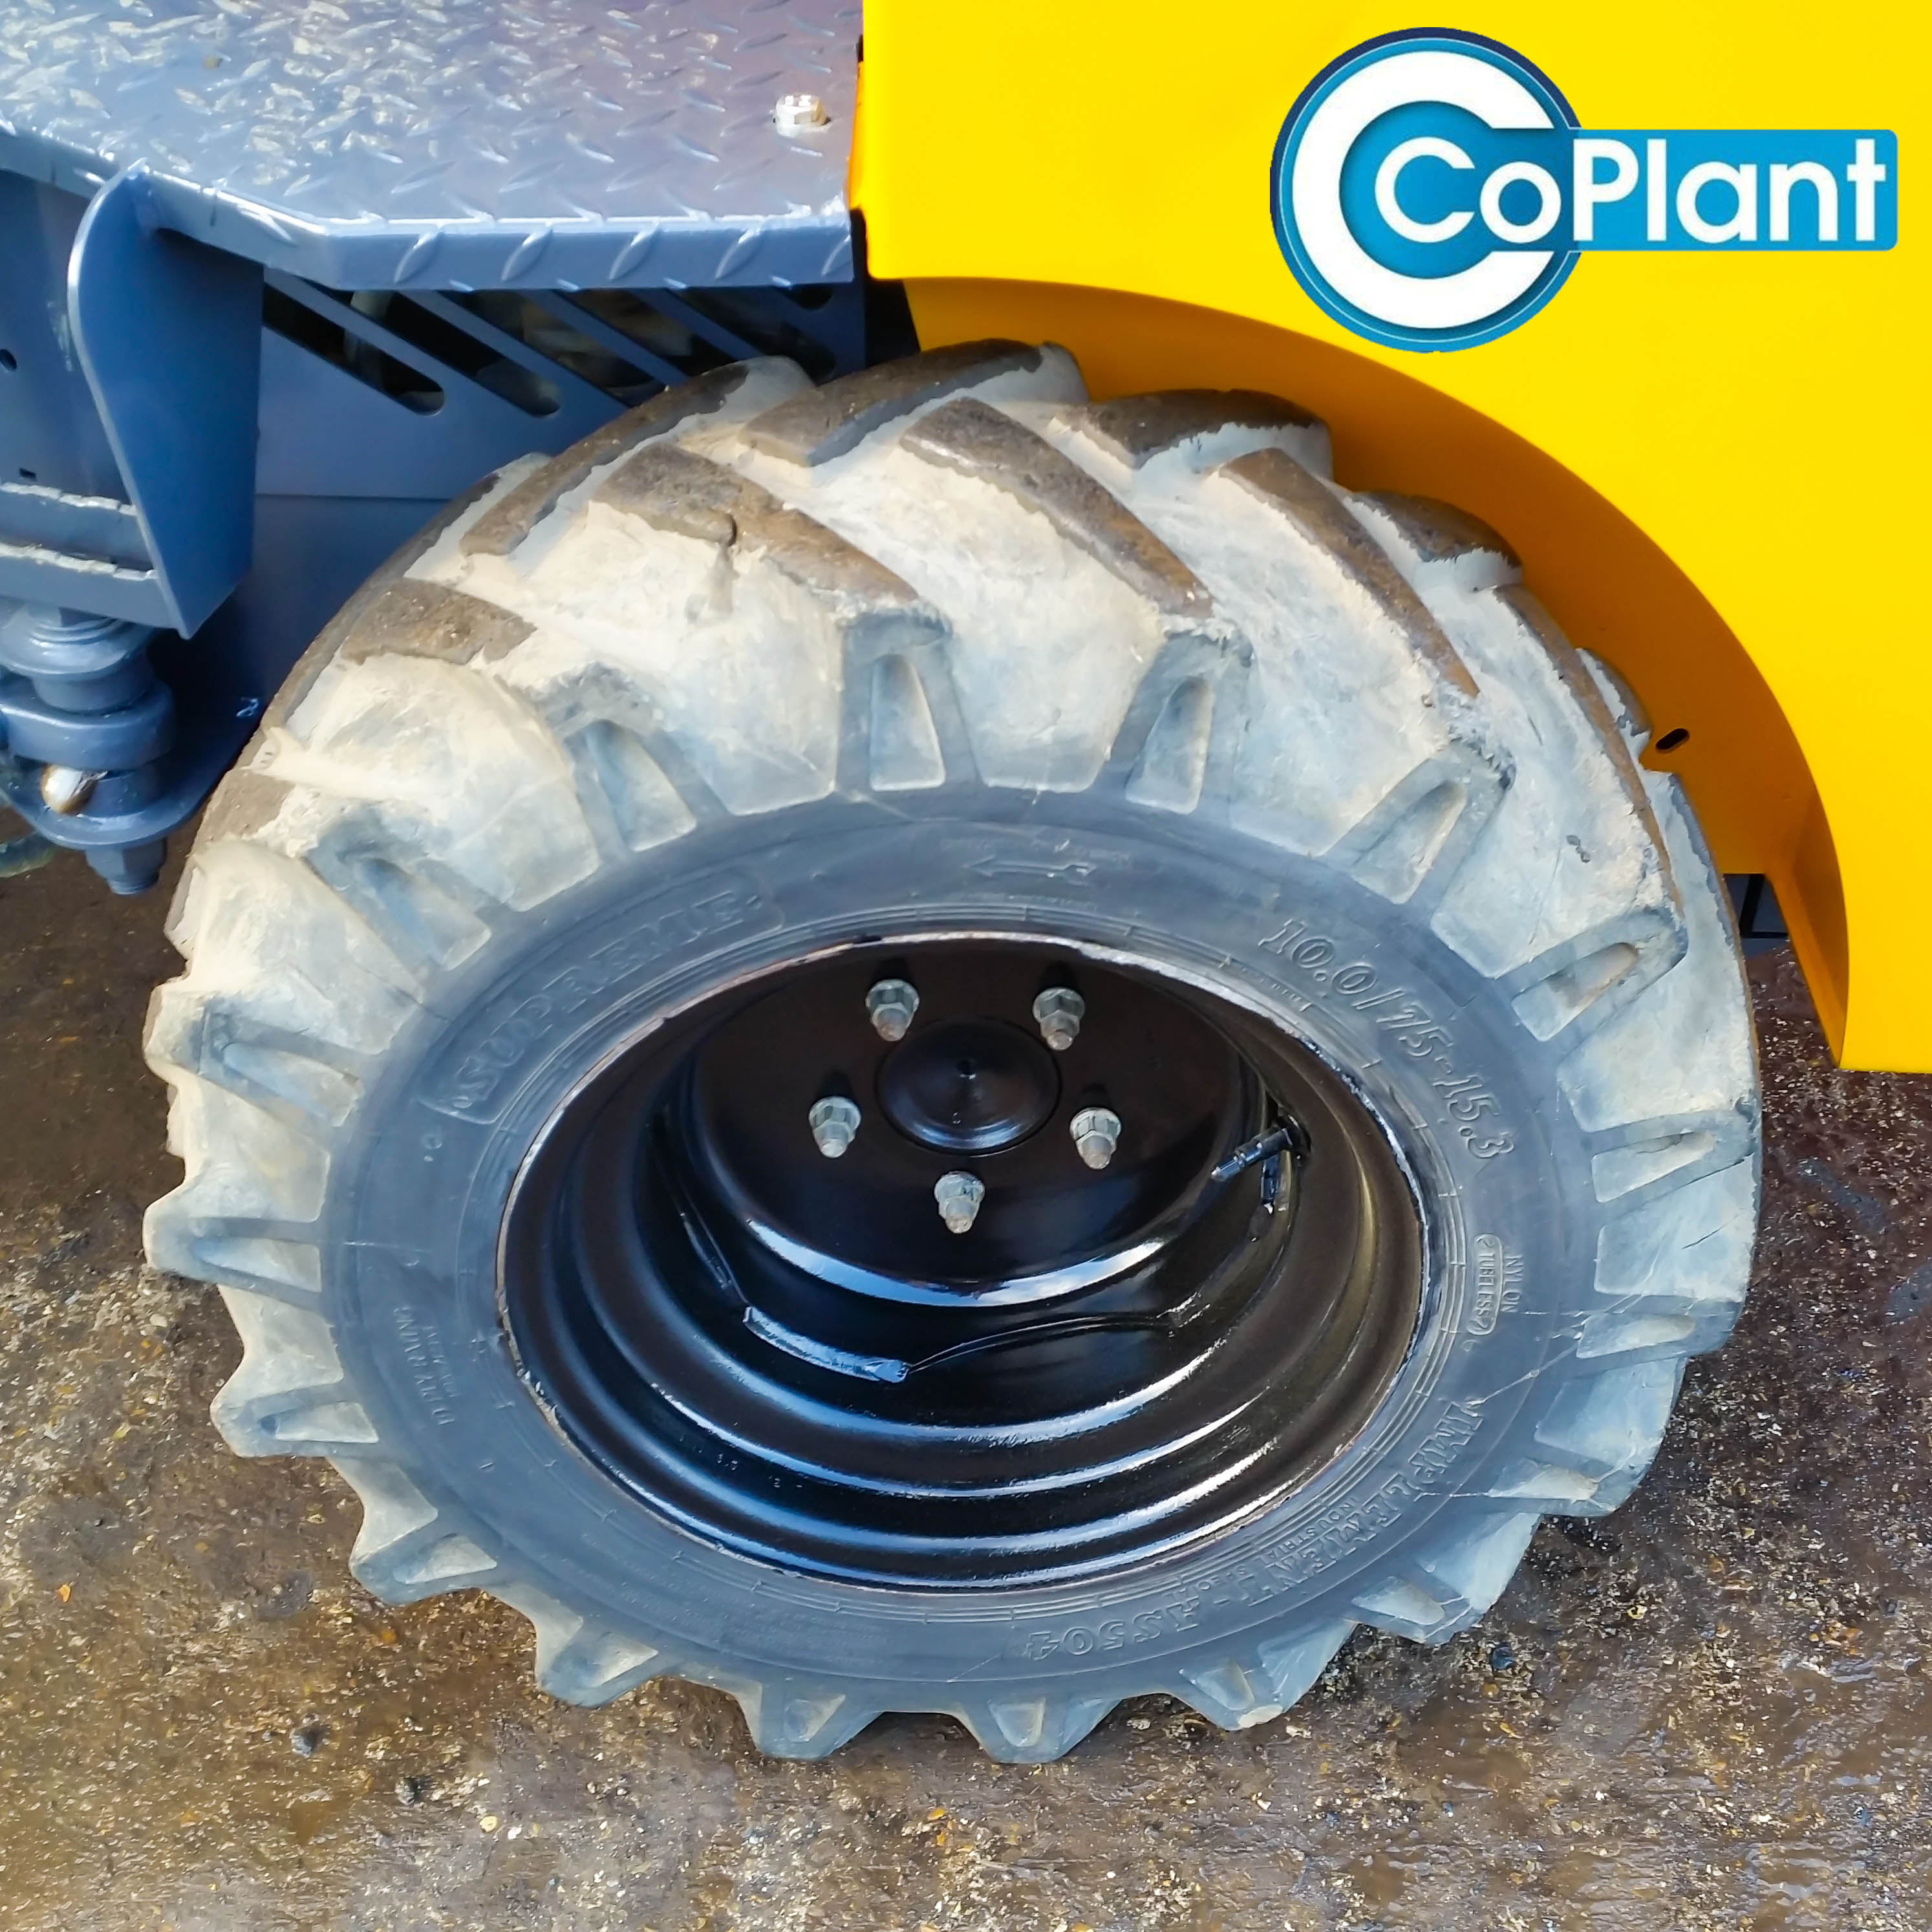 Terex HD1000 2008 Dumper available at coplant